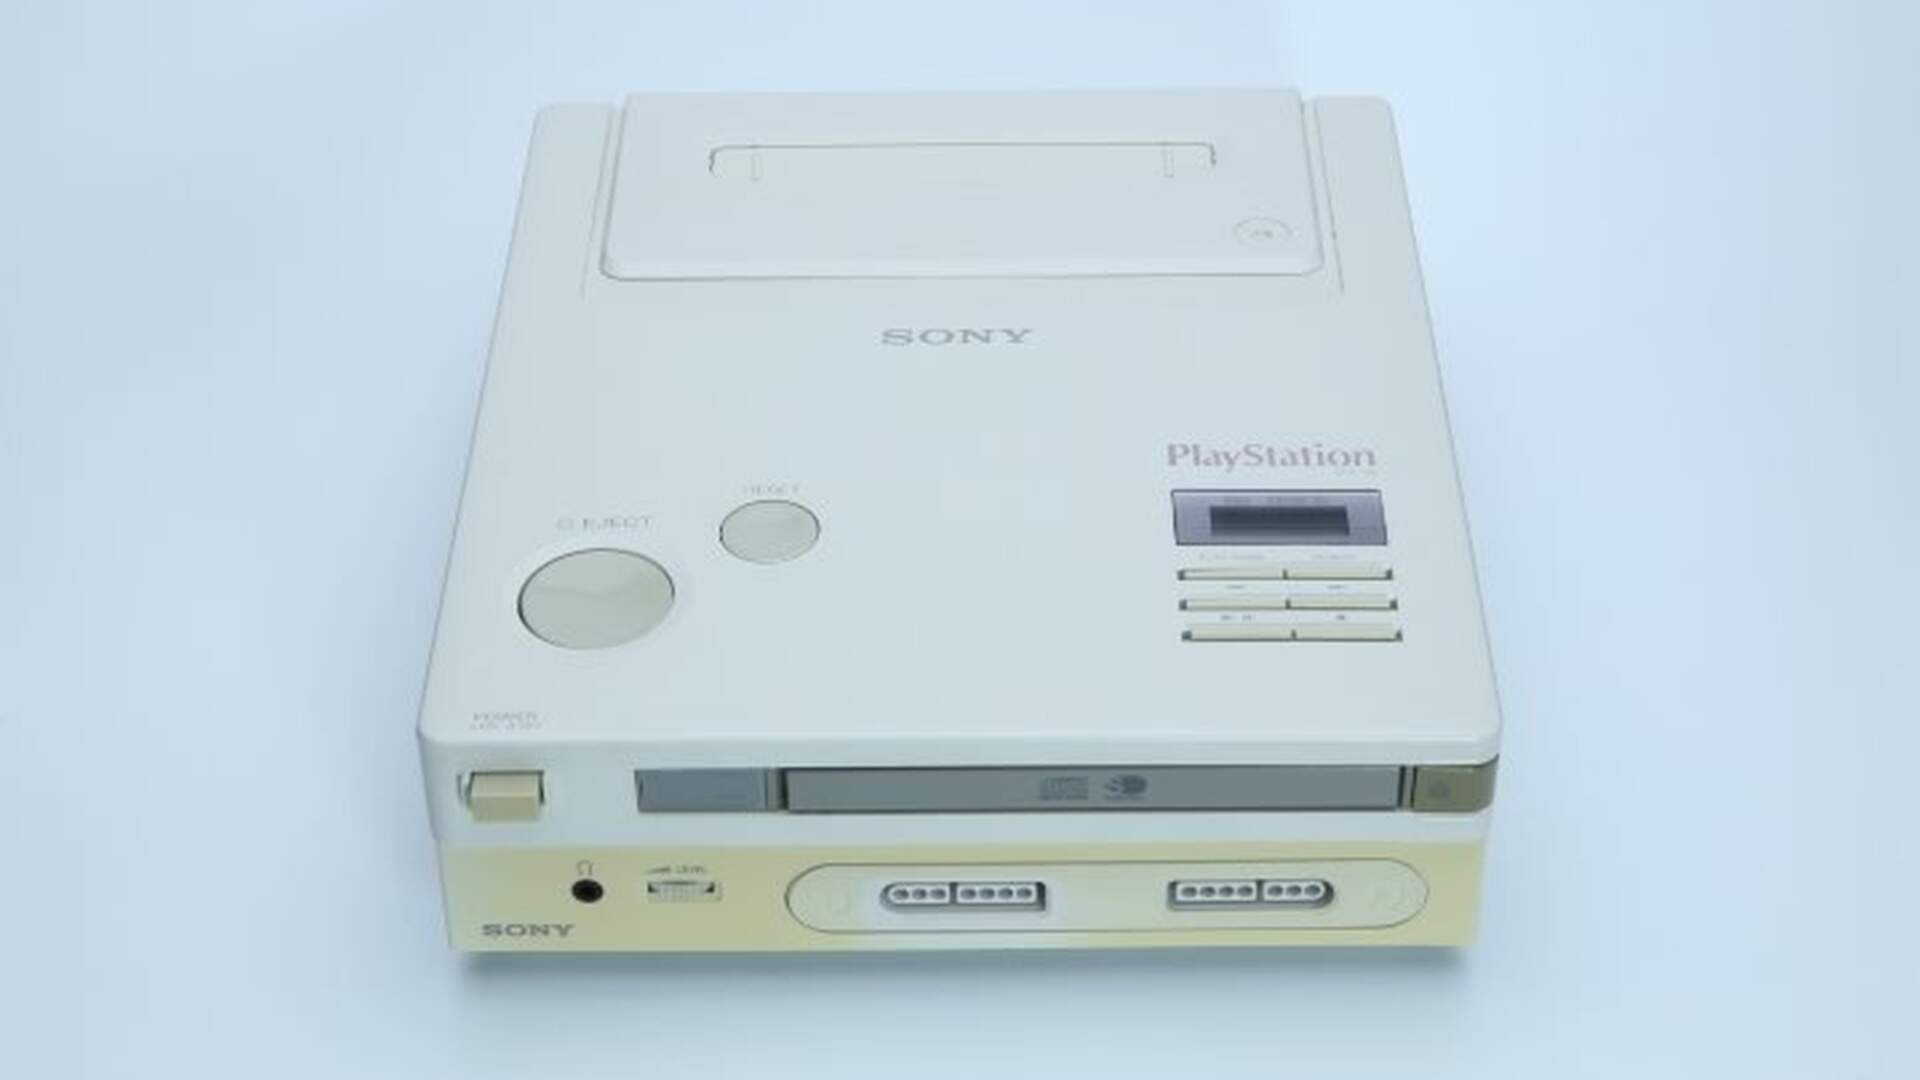 """The New Nintendo PlayStation Owner Wants to Make it Part of a """"Permanent Museum"""""""